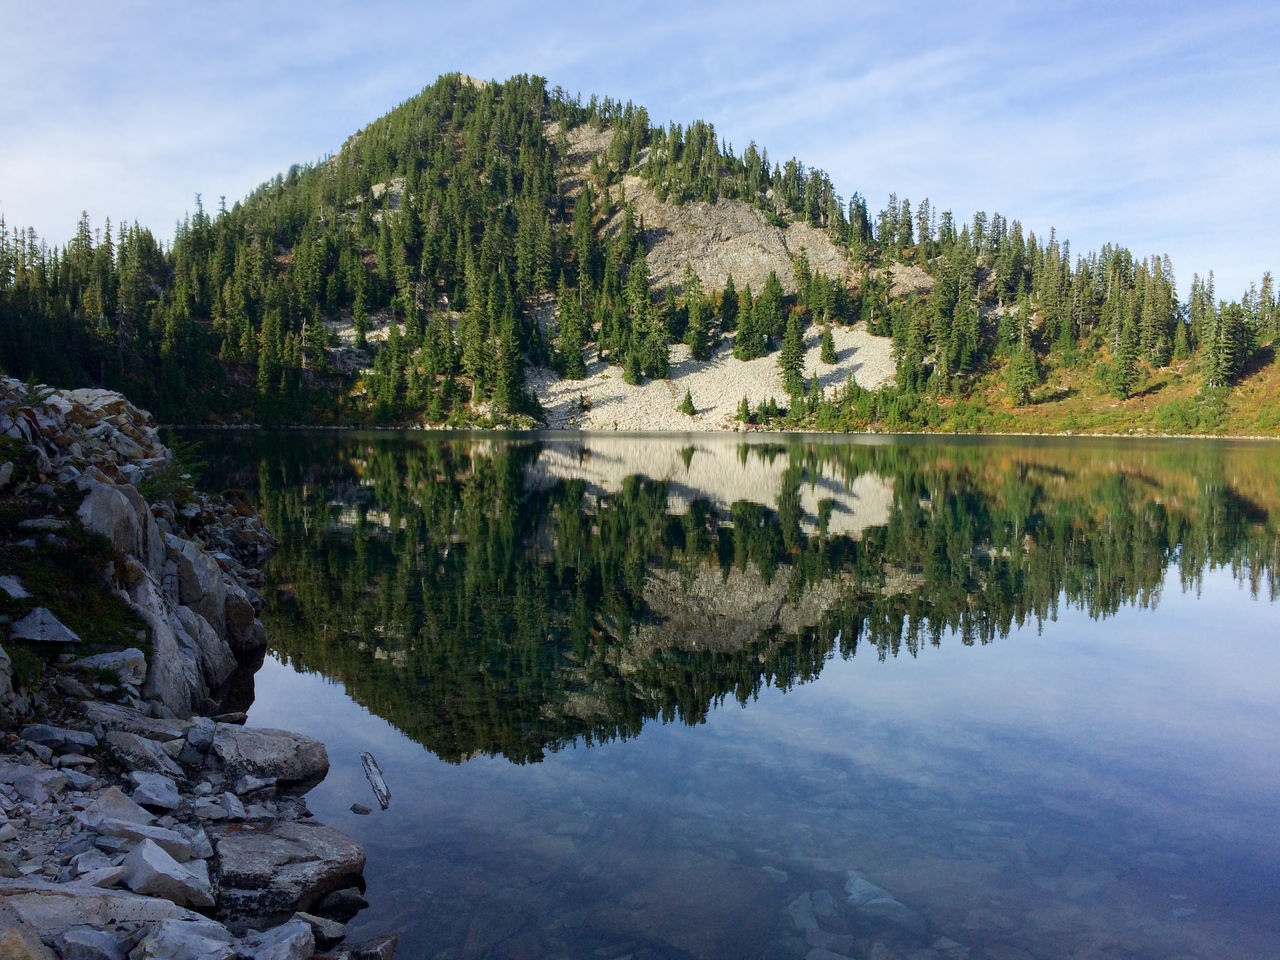 Mountain with lake reflection, no people Beauty In Nature Blue Cloud - Sky Day Forest Lake Landscape Nature No People Outdoors Pine Woodland Reflection Reflection Lake Scenics Sky Tourism Travel Tree Water Wilderness